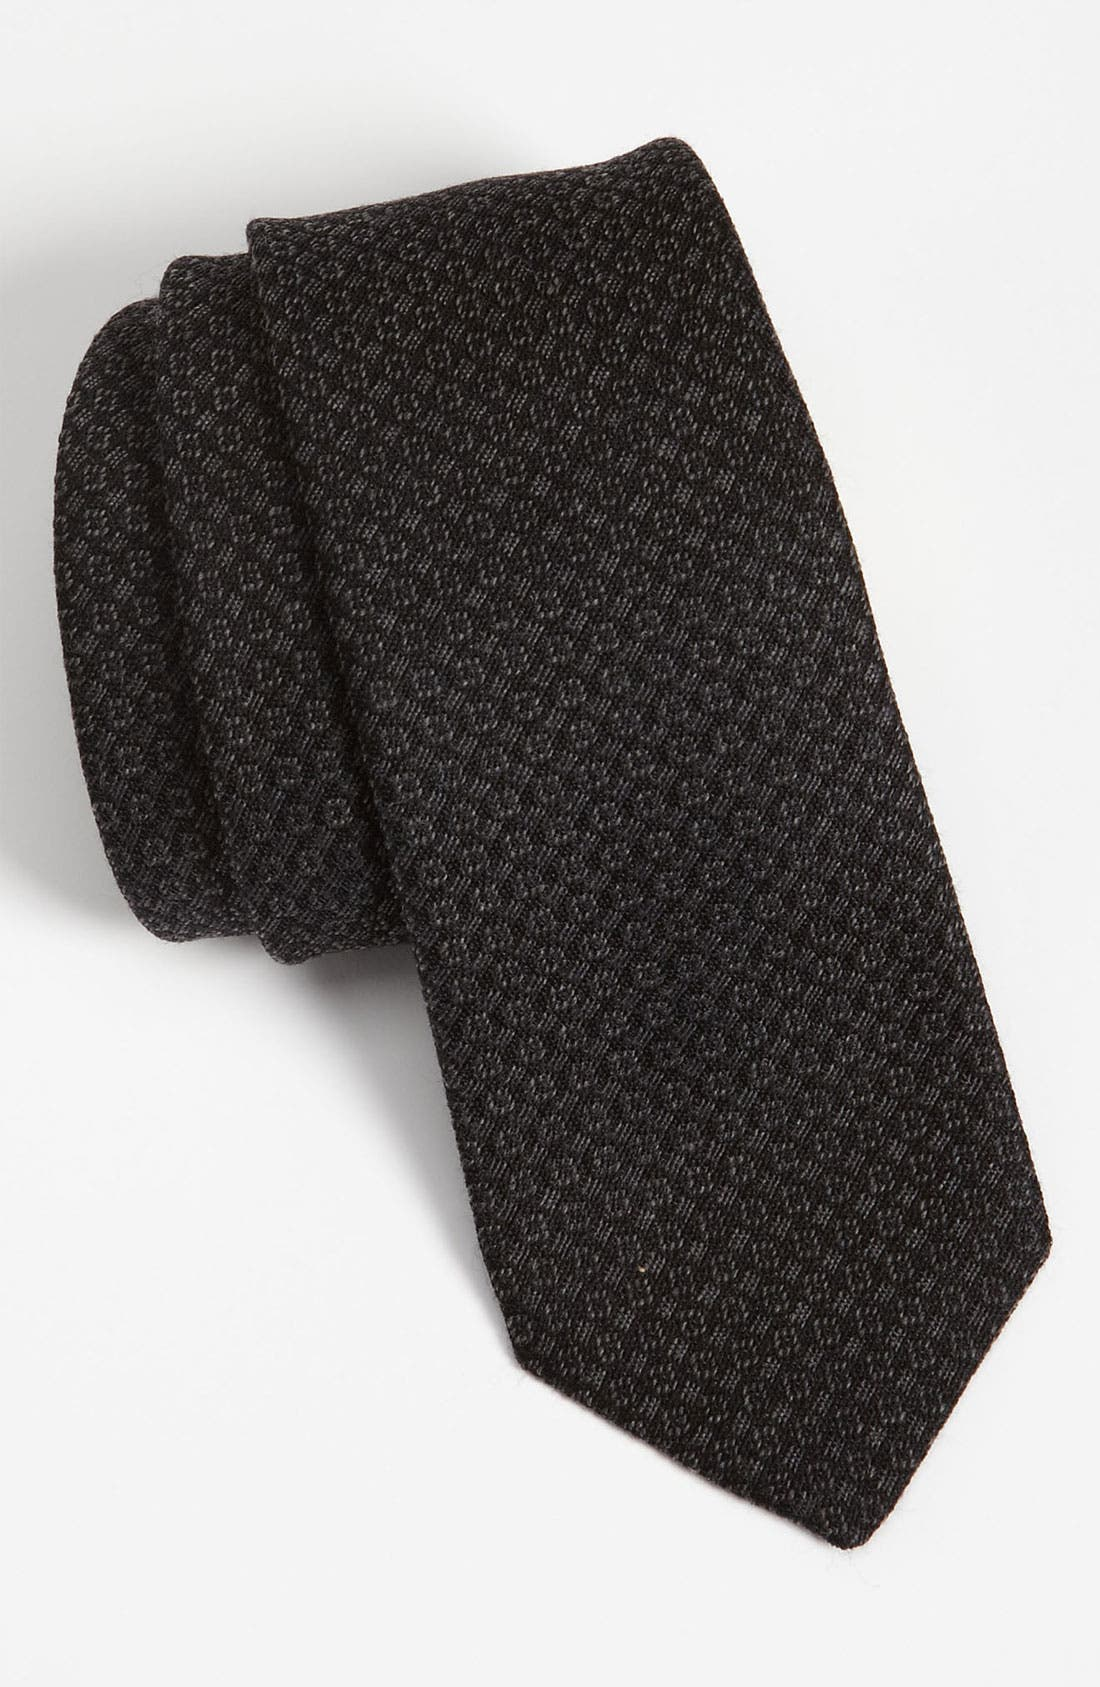 Main Image - Burberry London Wool Blend Tie